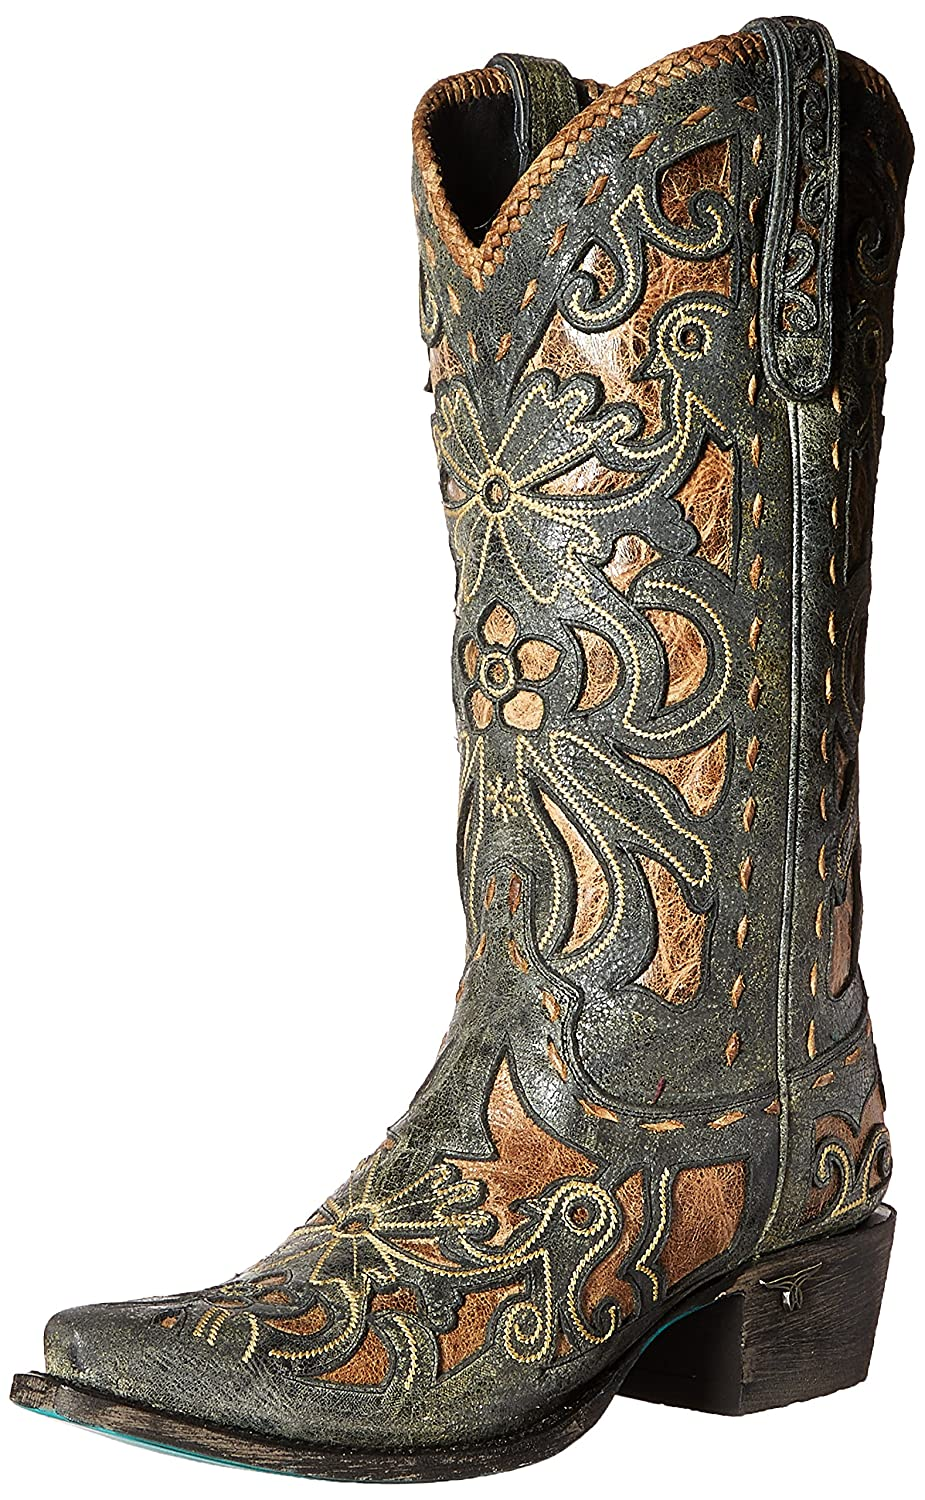 Women's Robin (Black and Tan) Western Boot